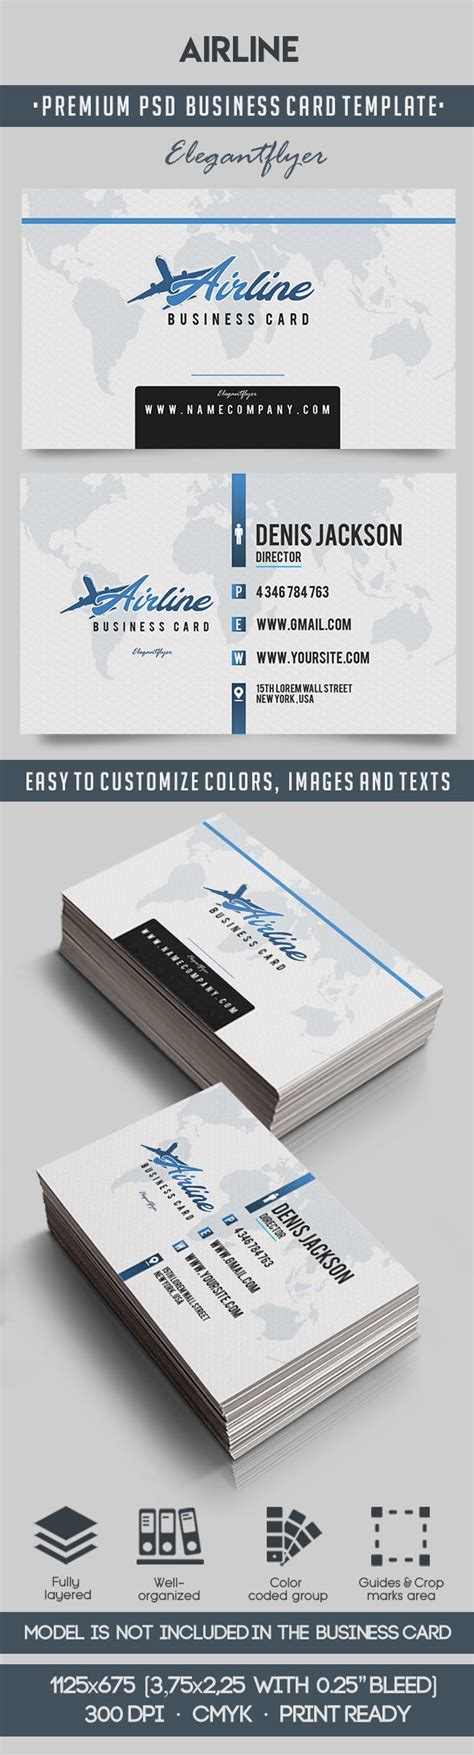 Air Business Card Template by Airline Premium Business Card Templates Psd By